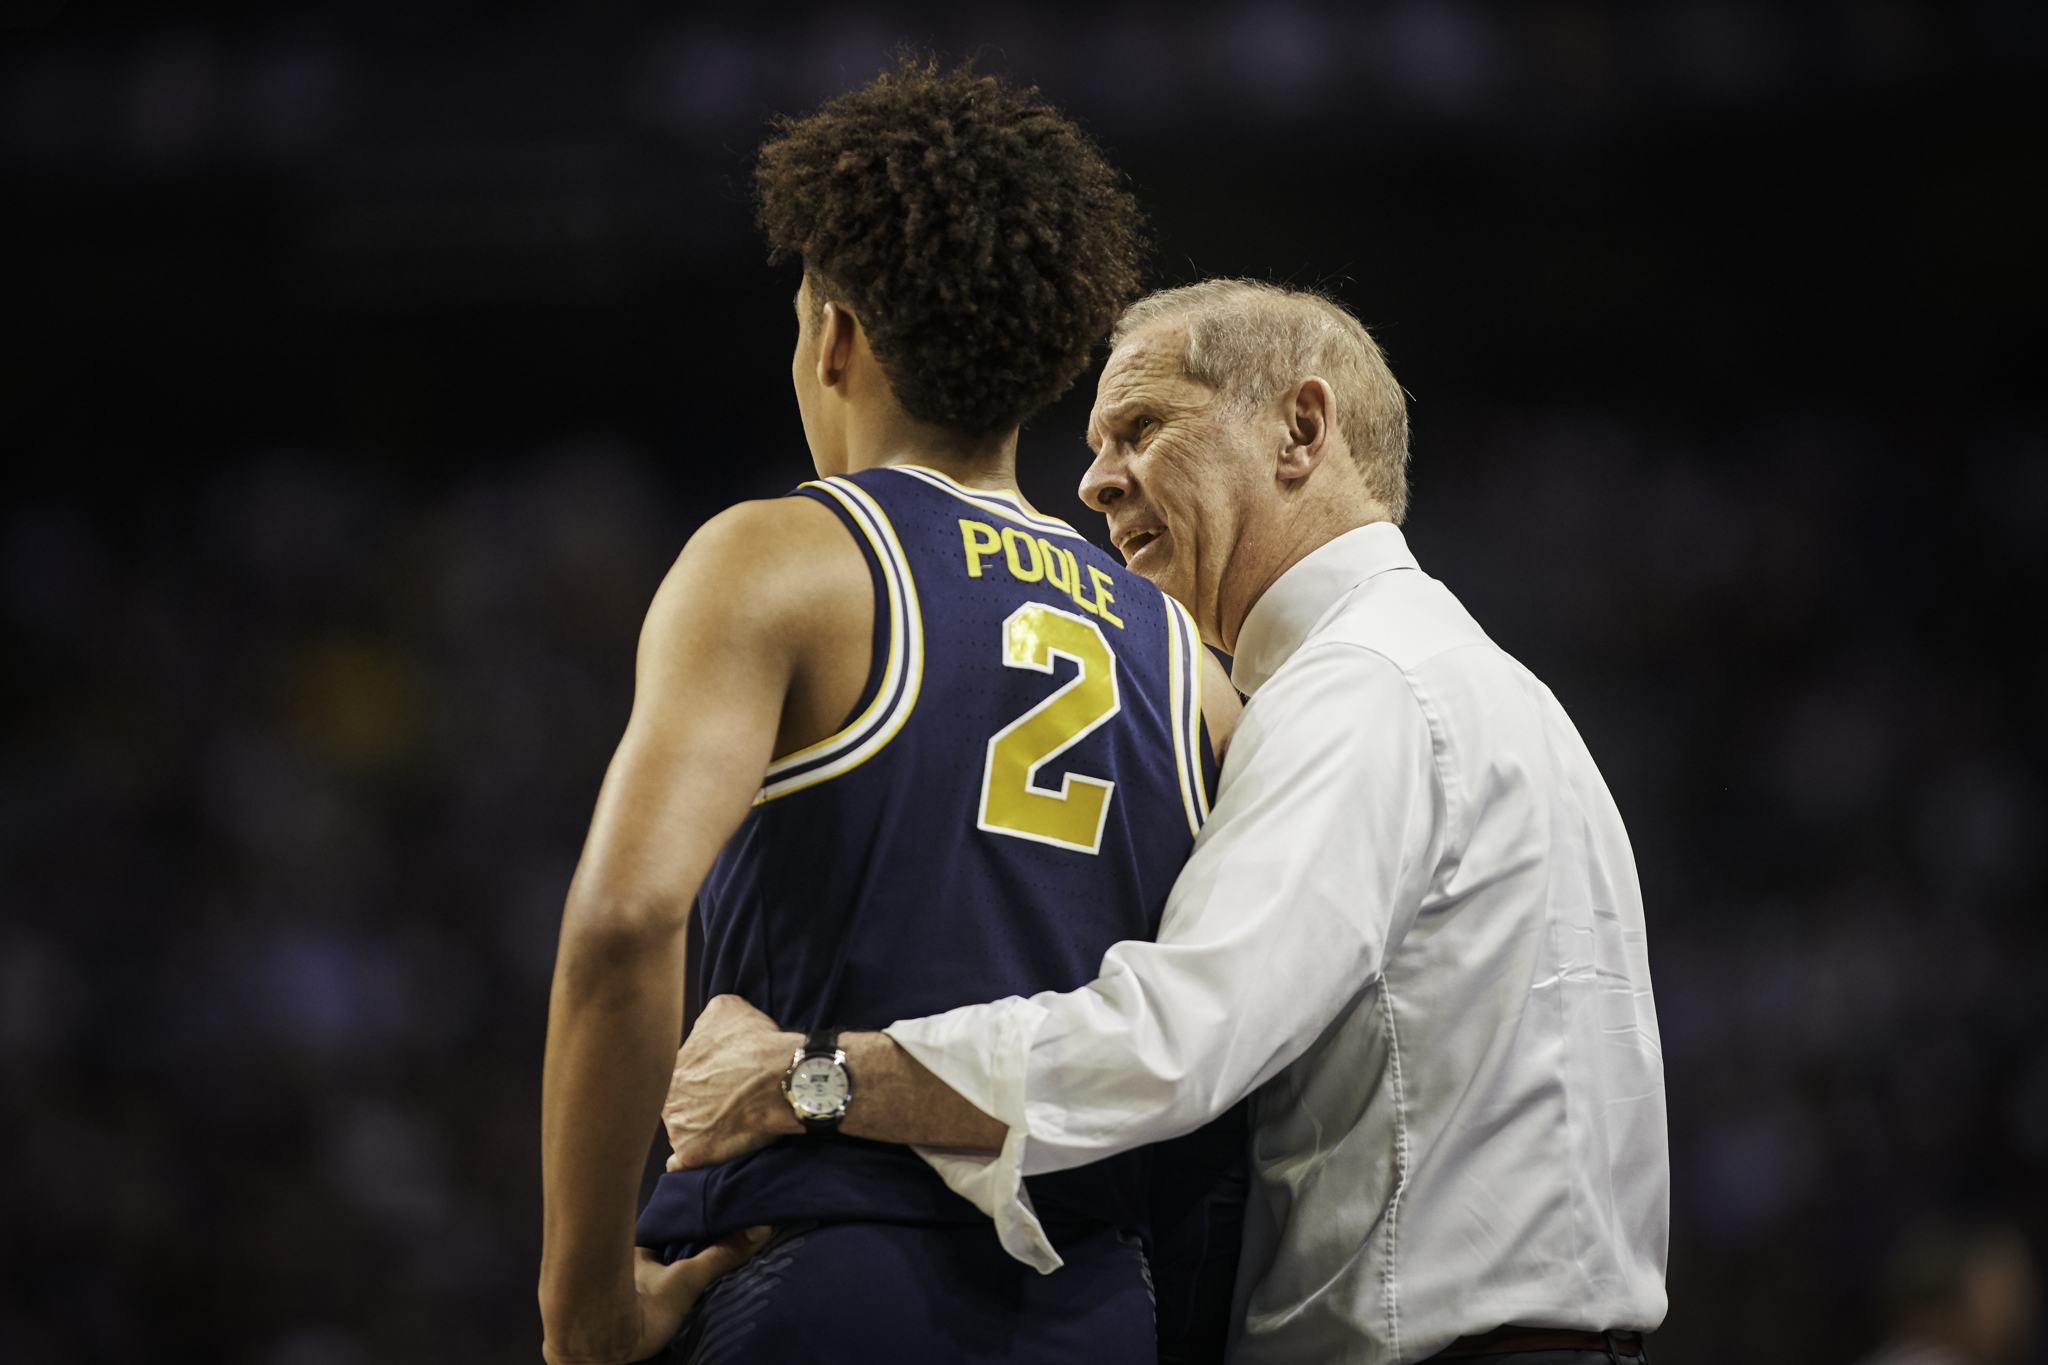 Michigan coach John Beilein gives Jordan Poole a few words of advice.   Sony A9, Sony 70-200mm f2.8 GM